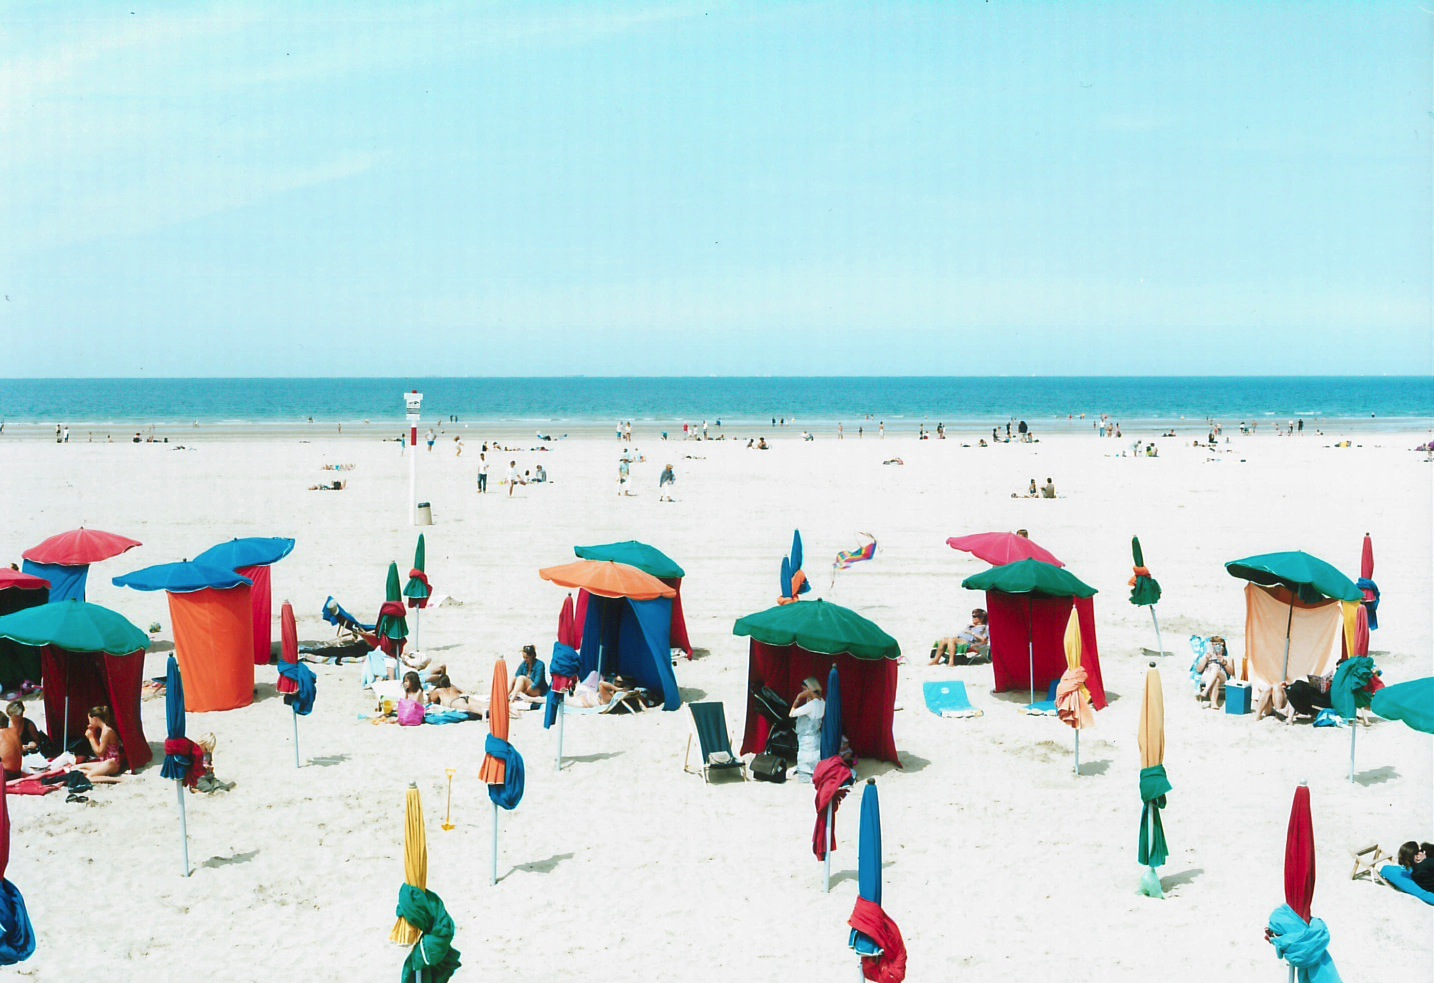 Massimo Vitali  Deauville Umbrellas, France , 2012 chromogenic print with Diasec mount 60 x 72 in. edition of 6